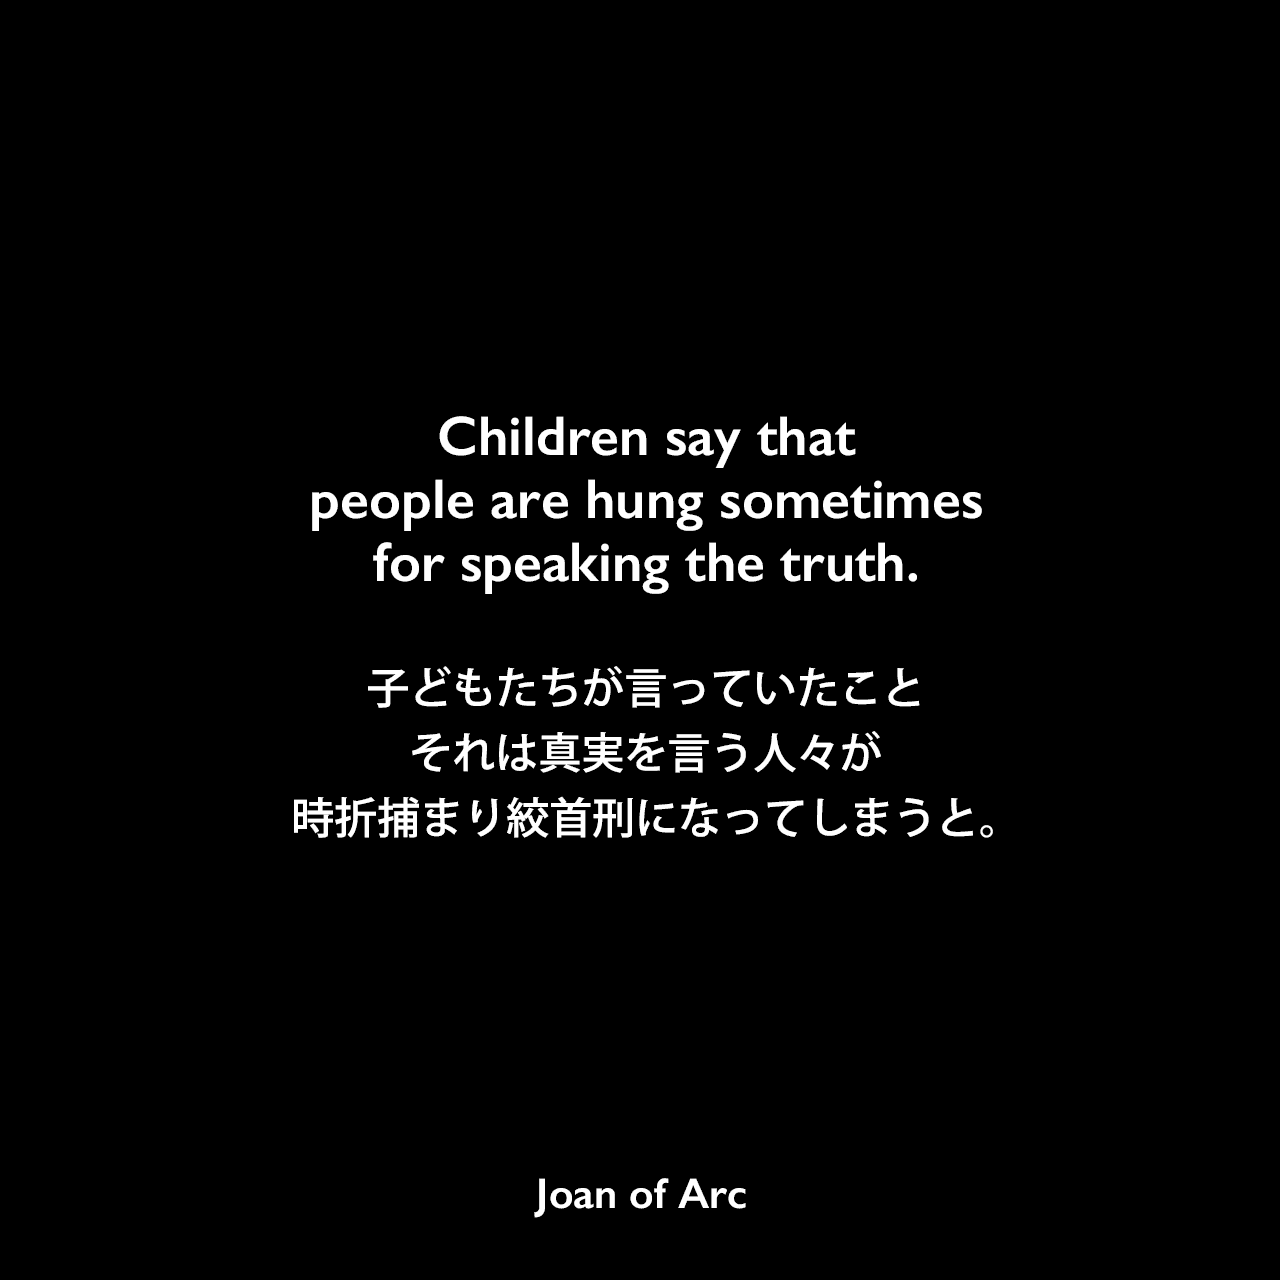 Children say that people are hung sometimes for speaking the truth.子どもたちが言っていたこと、それは真実を言う人々が時折捕まり絞首刑になってしまうと。- ジャンヌ・ダルクの公判記録よりJoan of Arc